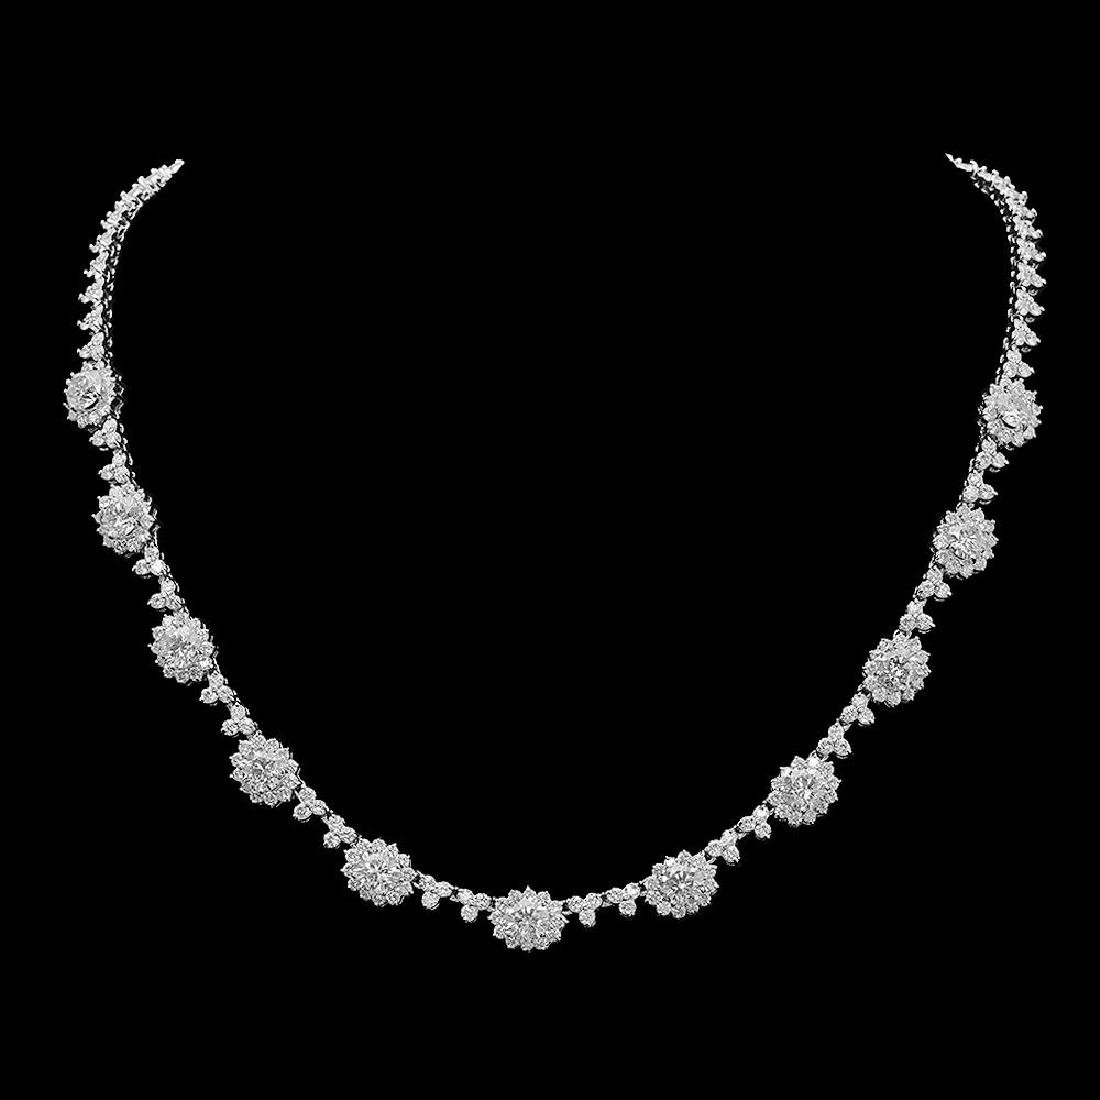 18K Gold 16.81ct Diamond Necklace